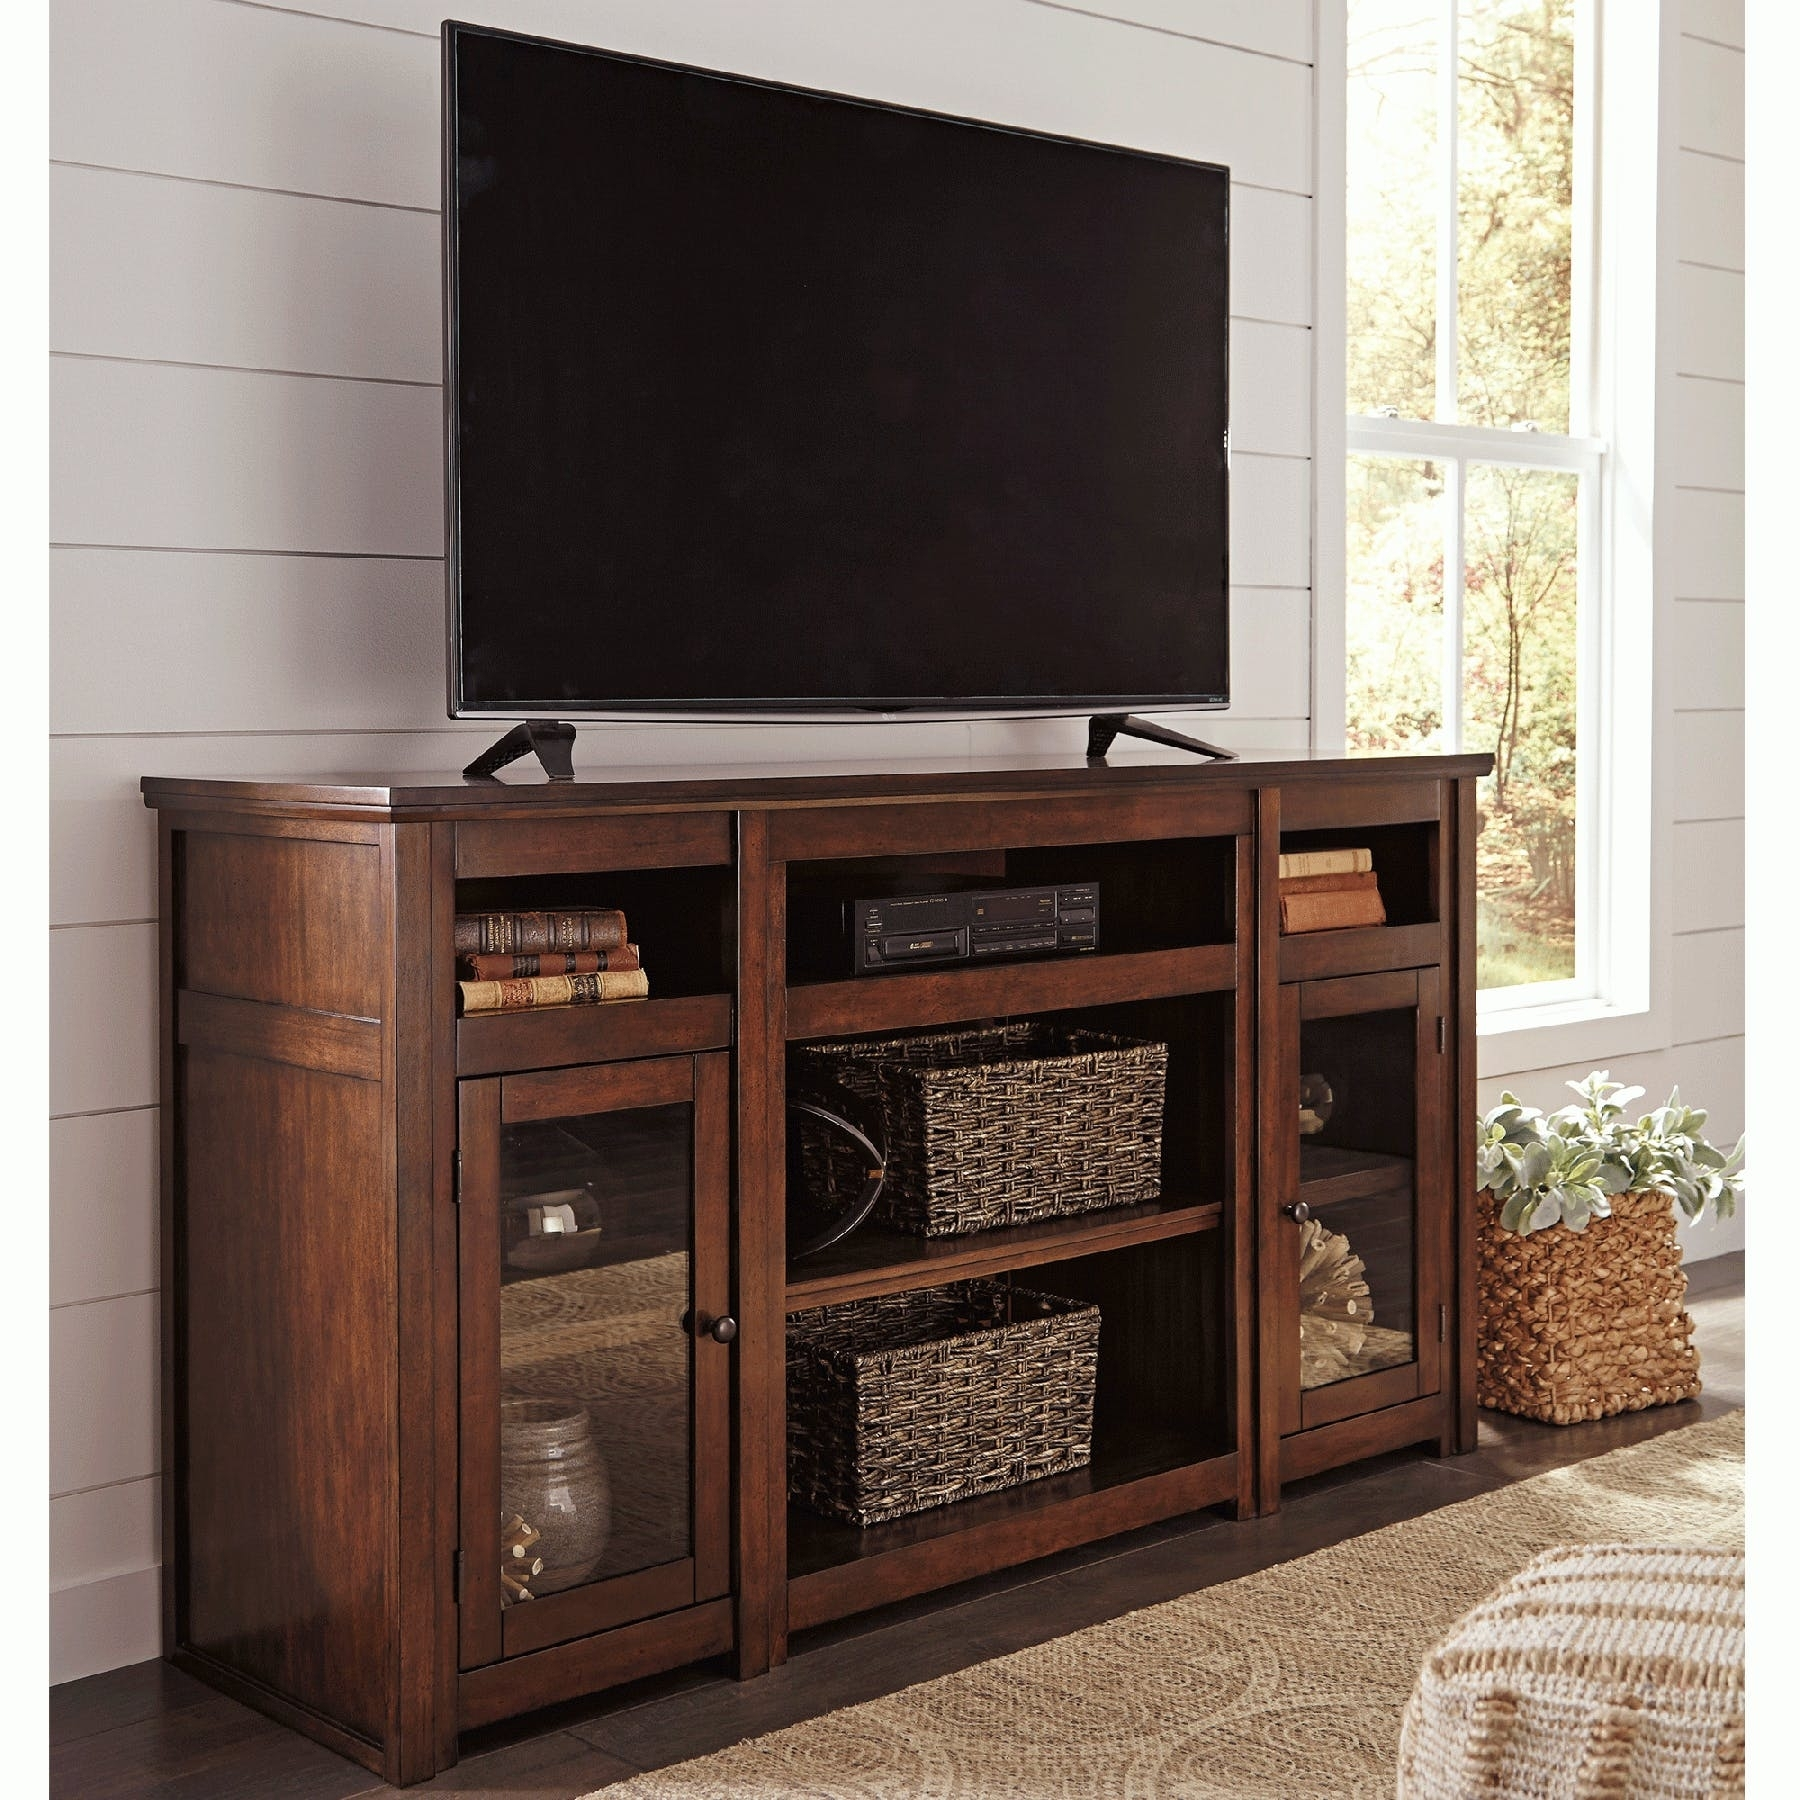 Harpan 72 Inch Entertainment Unit - Bernie & Phyl's Furniture - intended for Brown Wood 72 Inch Sideboards (Image 14 of 30)